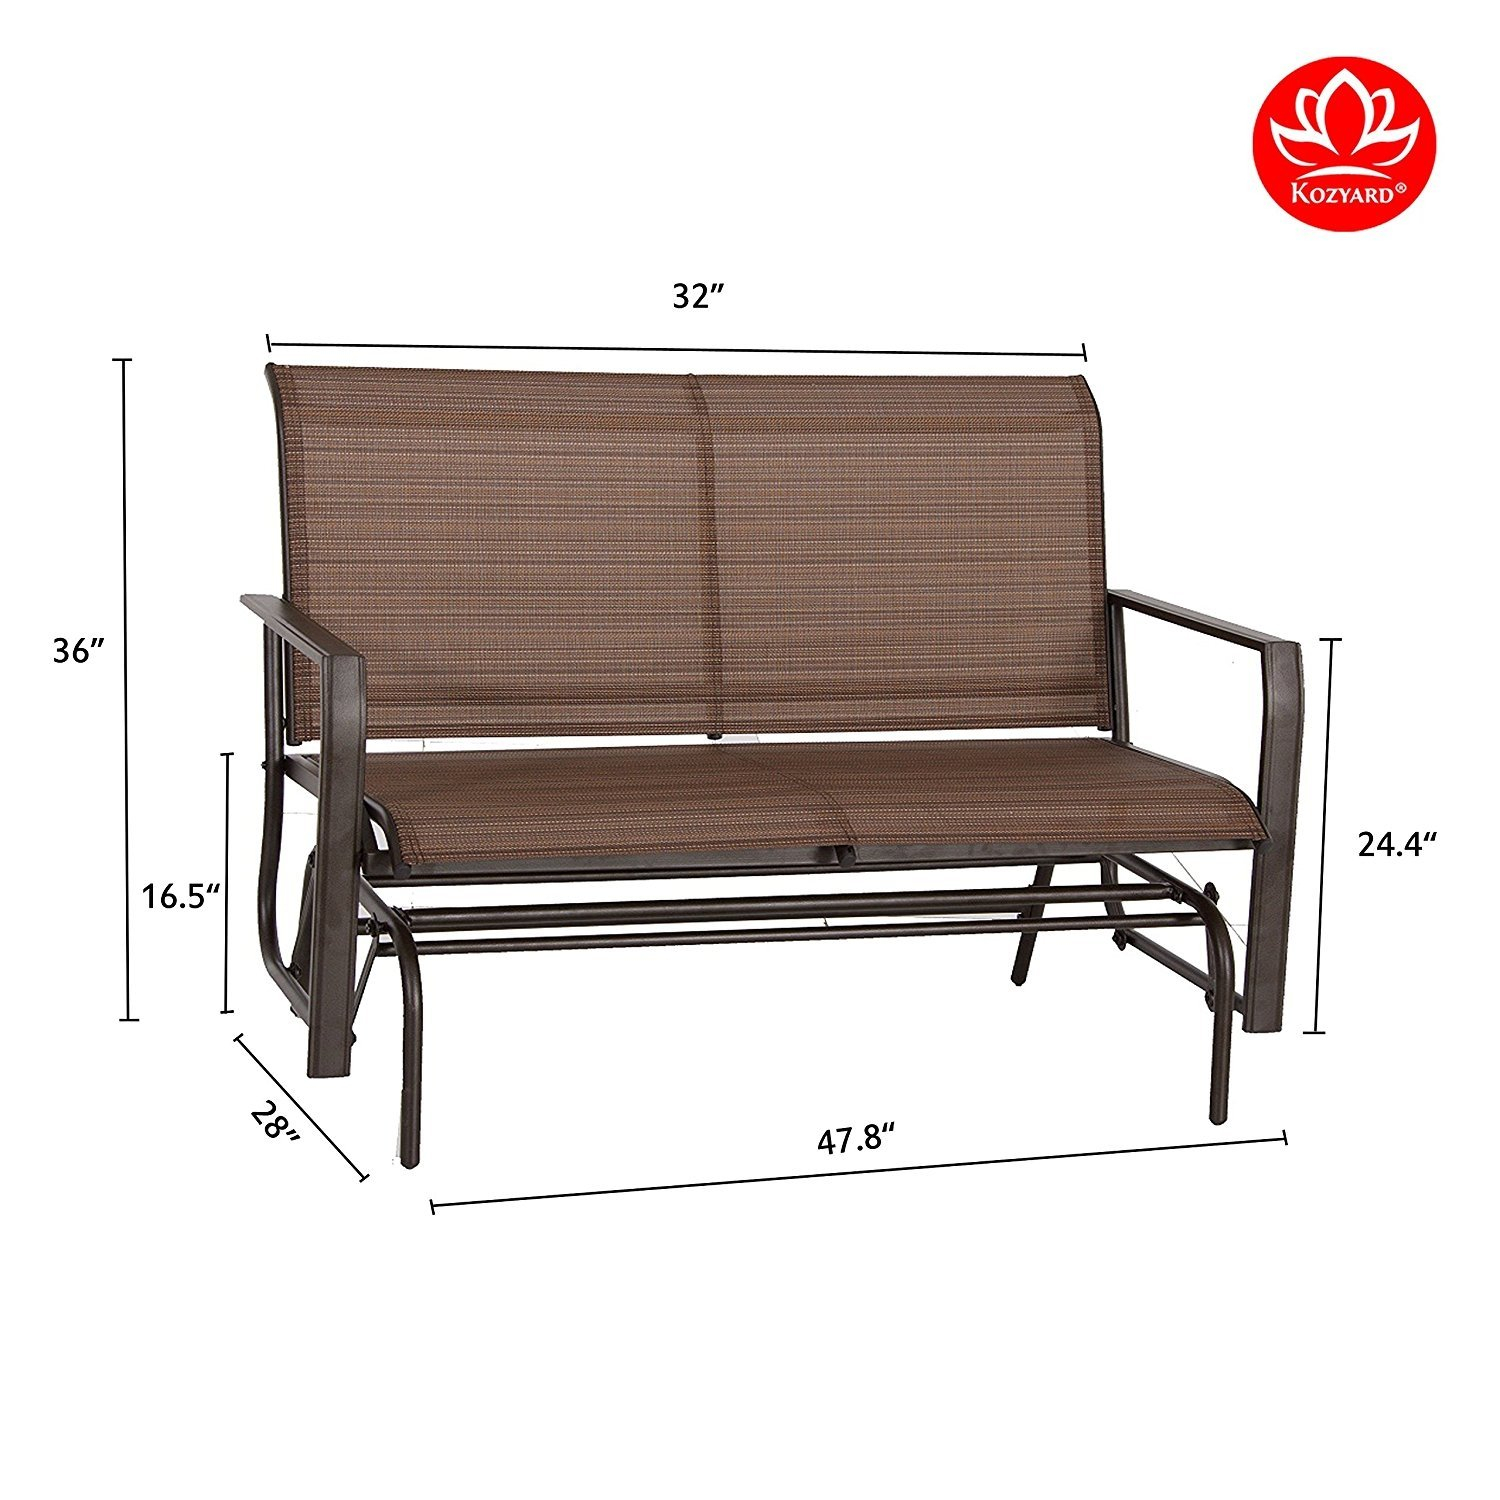 Kozyard Cozy Two Rocking Love Seats Glider Swing Bench Pertaining To 2 Person Antique Black Iron Outdoor Gliders (Image 20 of 25)